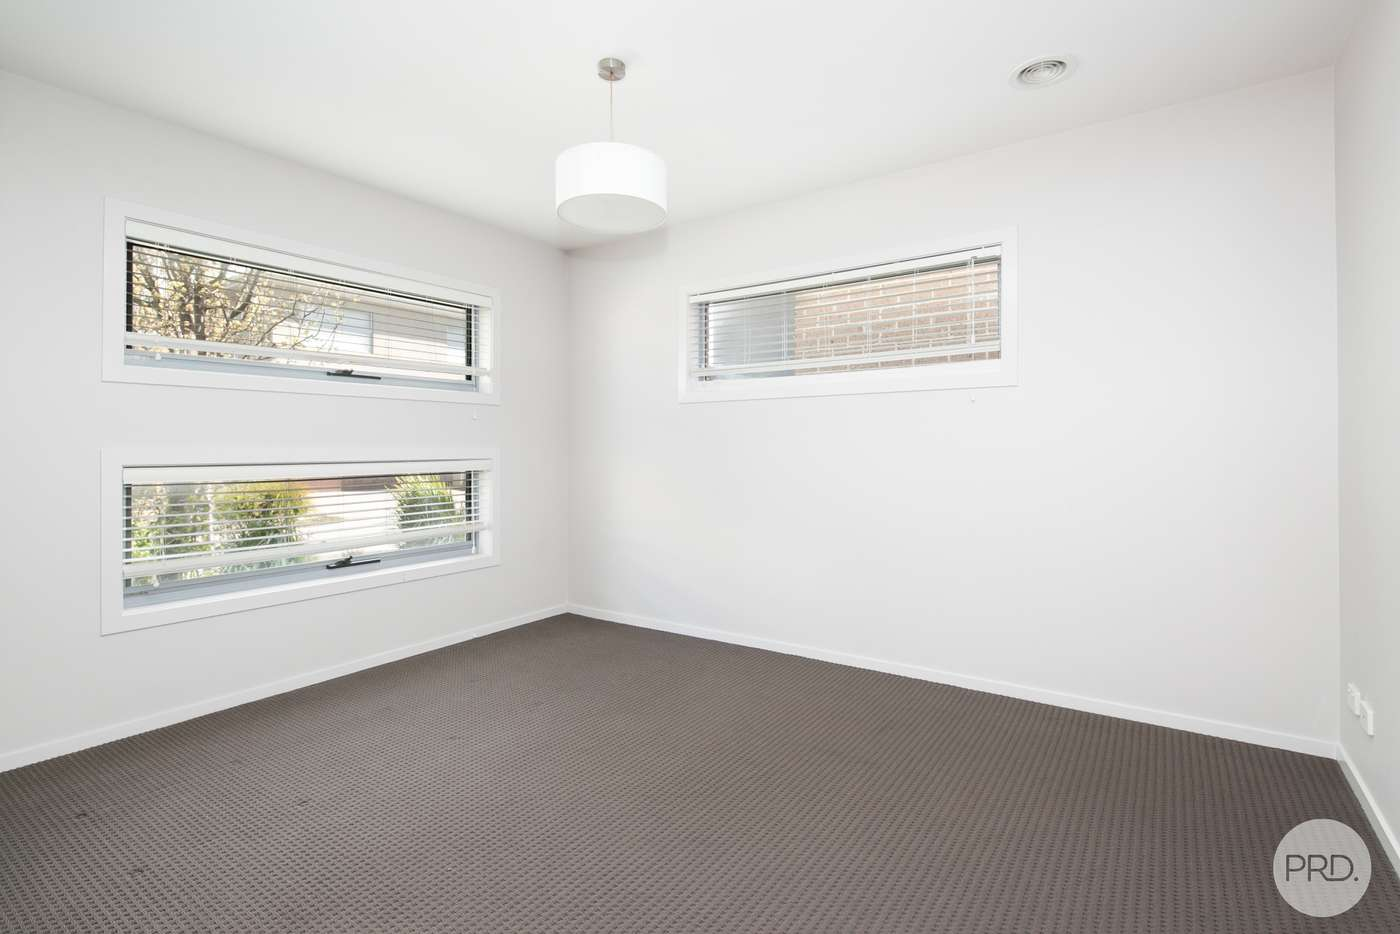 Fifth view of Homely house listing, 13 Balanada Close, Alfredton VIC 3350